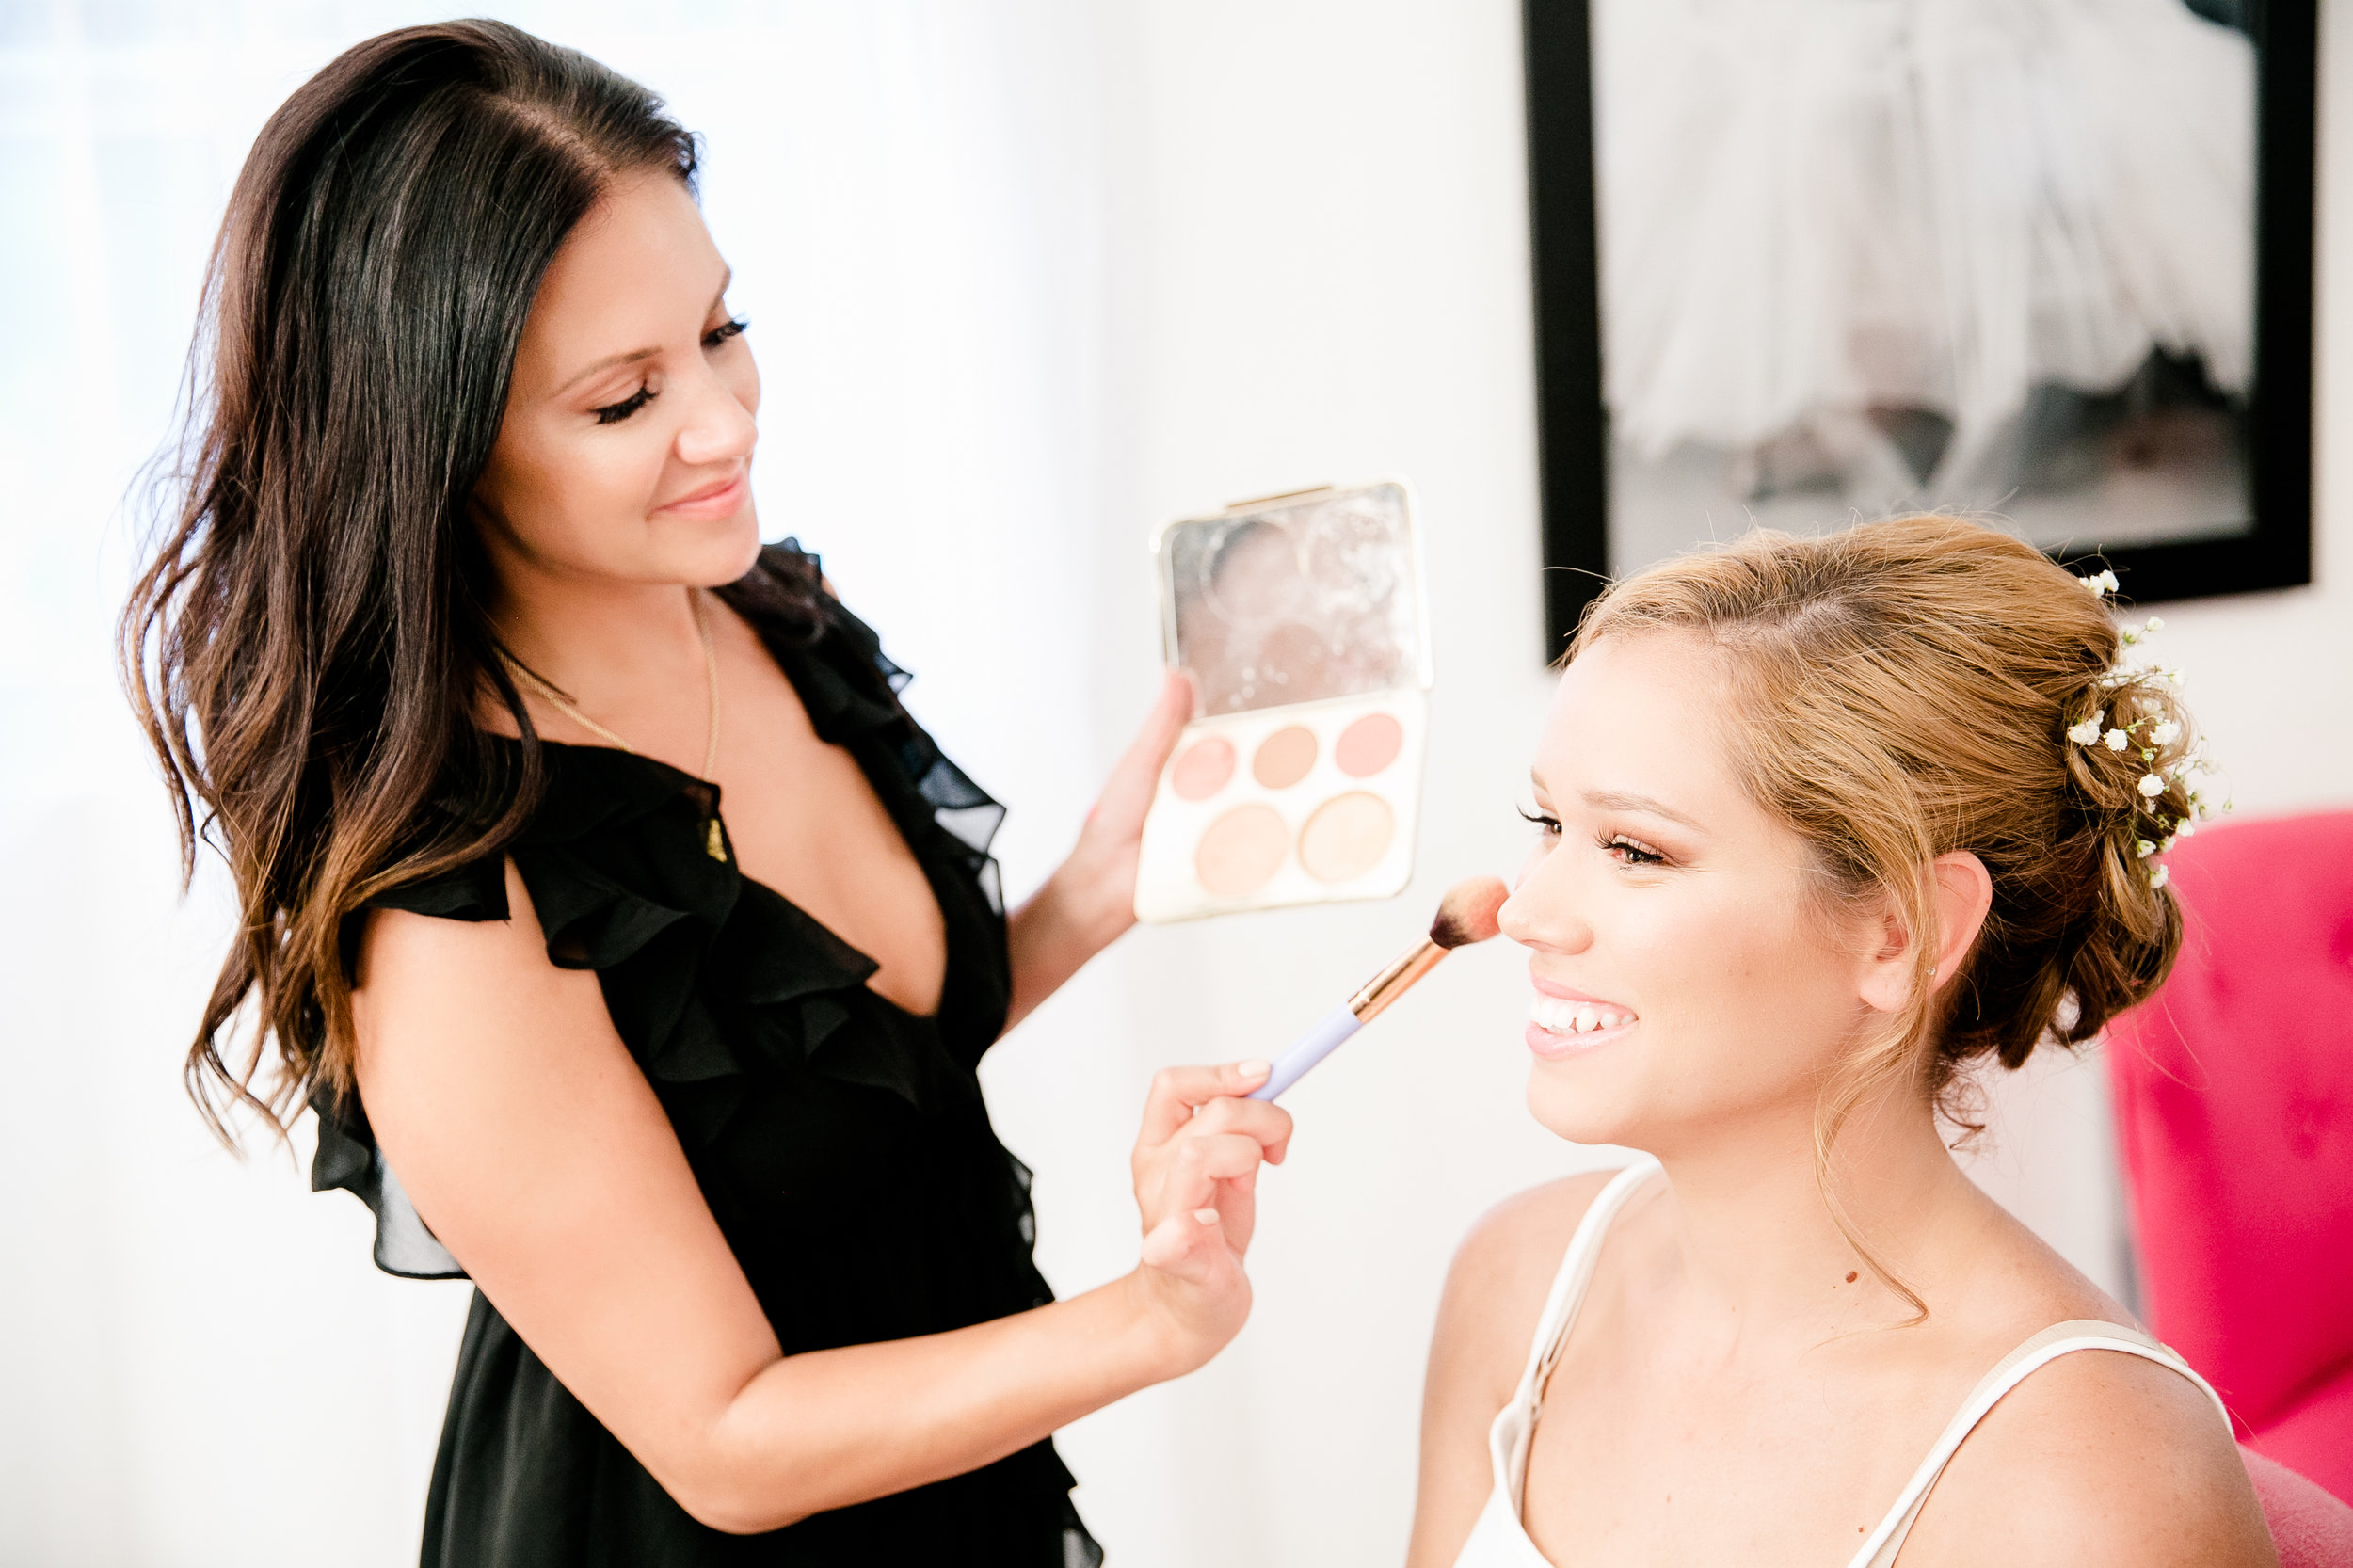 Makeup Classes - Revamp your makeup bag and learn essential beauty tips to stay camera ready. Let's face it when you're a bride all eyes are on you! We will evaluate your skin, create a look, and teach you how to master it on your own. We custom order your products and review your new routine in a follow up class. We even send you home with a cheat sheet and a complimentary brush set!Bride-to-be Makeup Class $150Bachelorette Makeup Party GREAT FOR DESTINATION WEDDING BRIDES